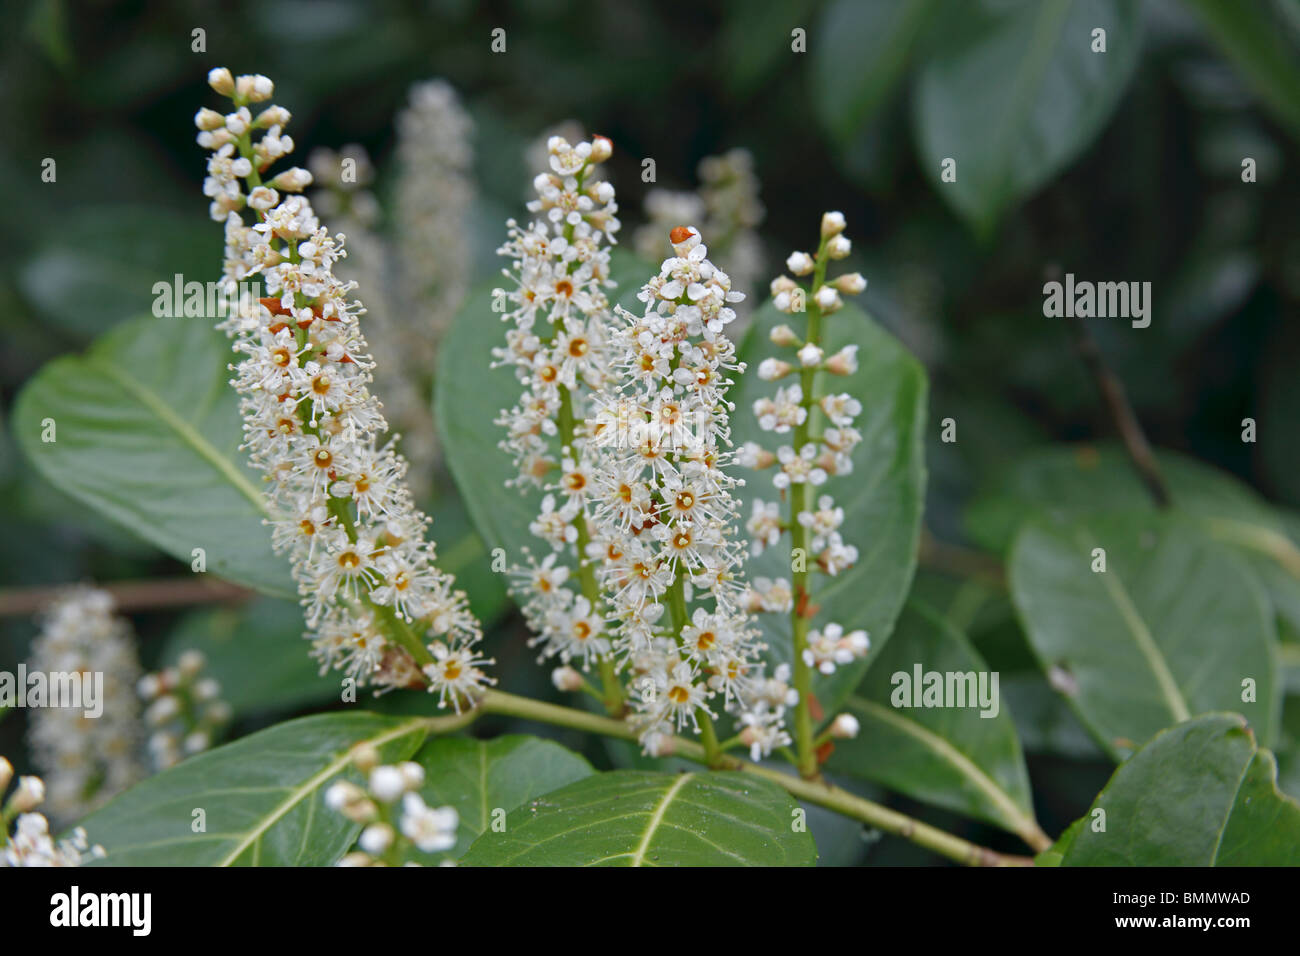 laurel (Prunus laurocerasus) close up of flower spikes - Stock Image